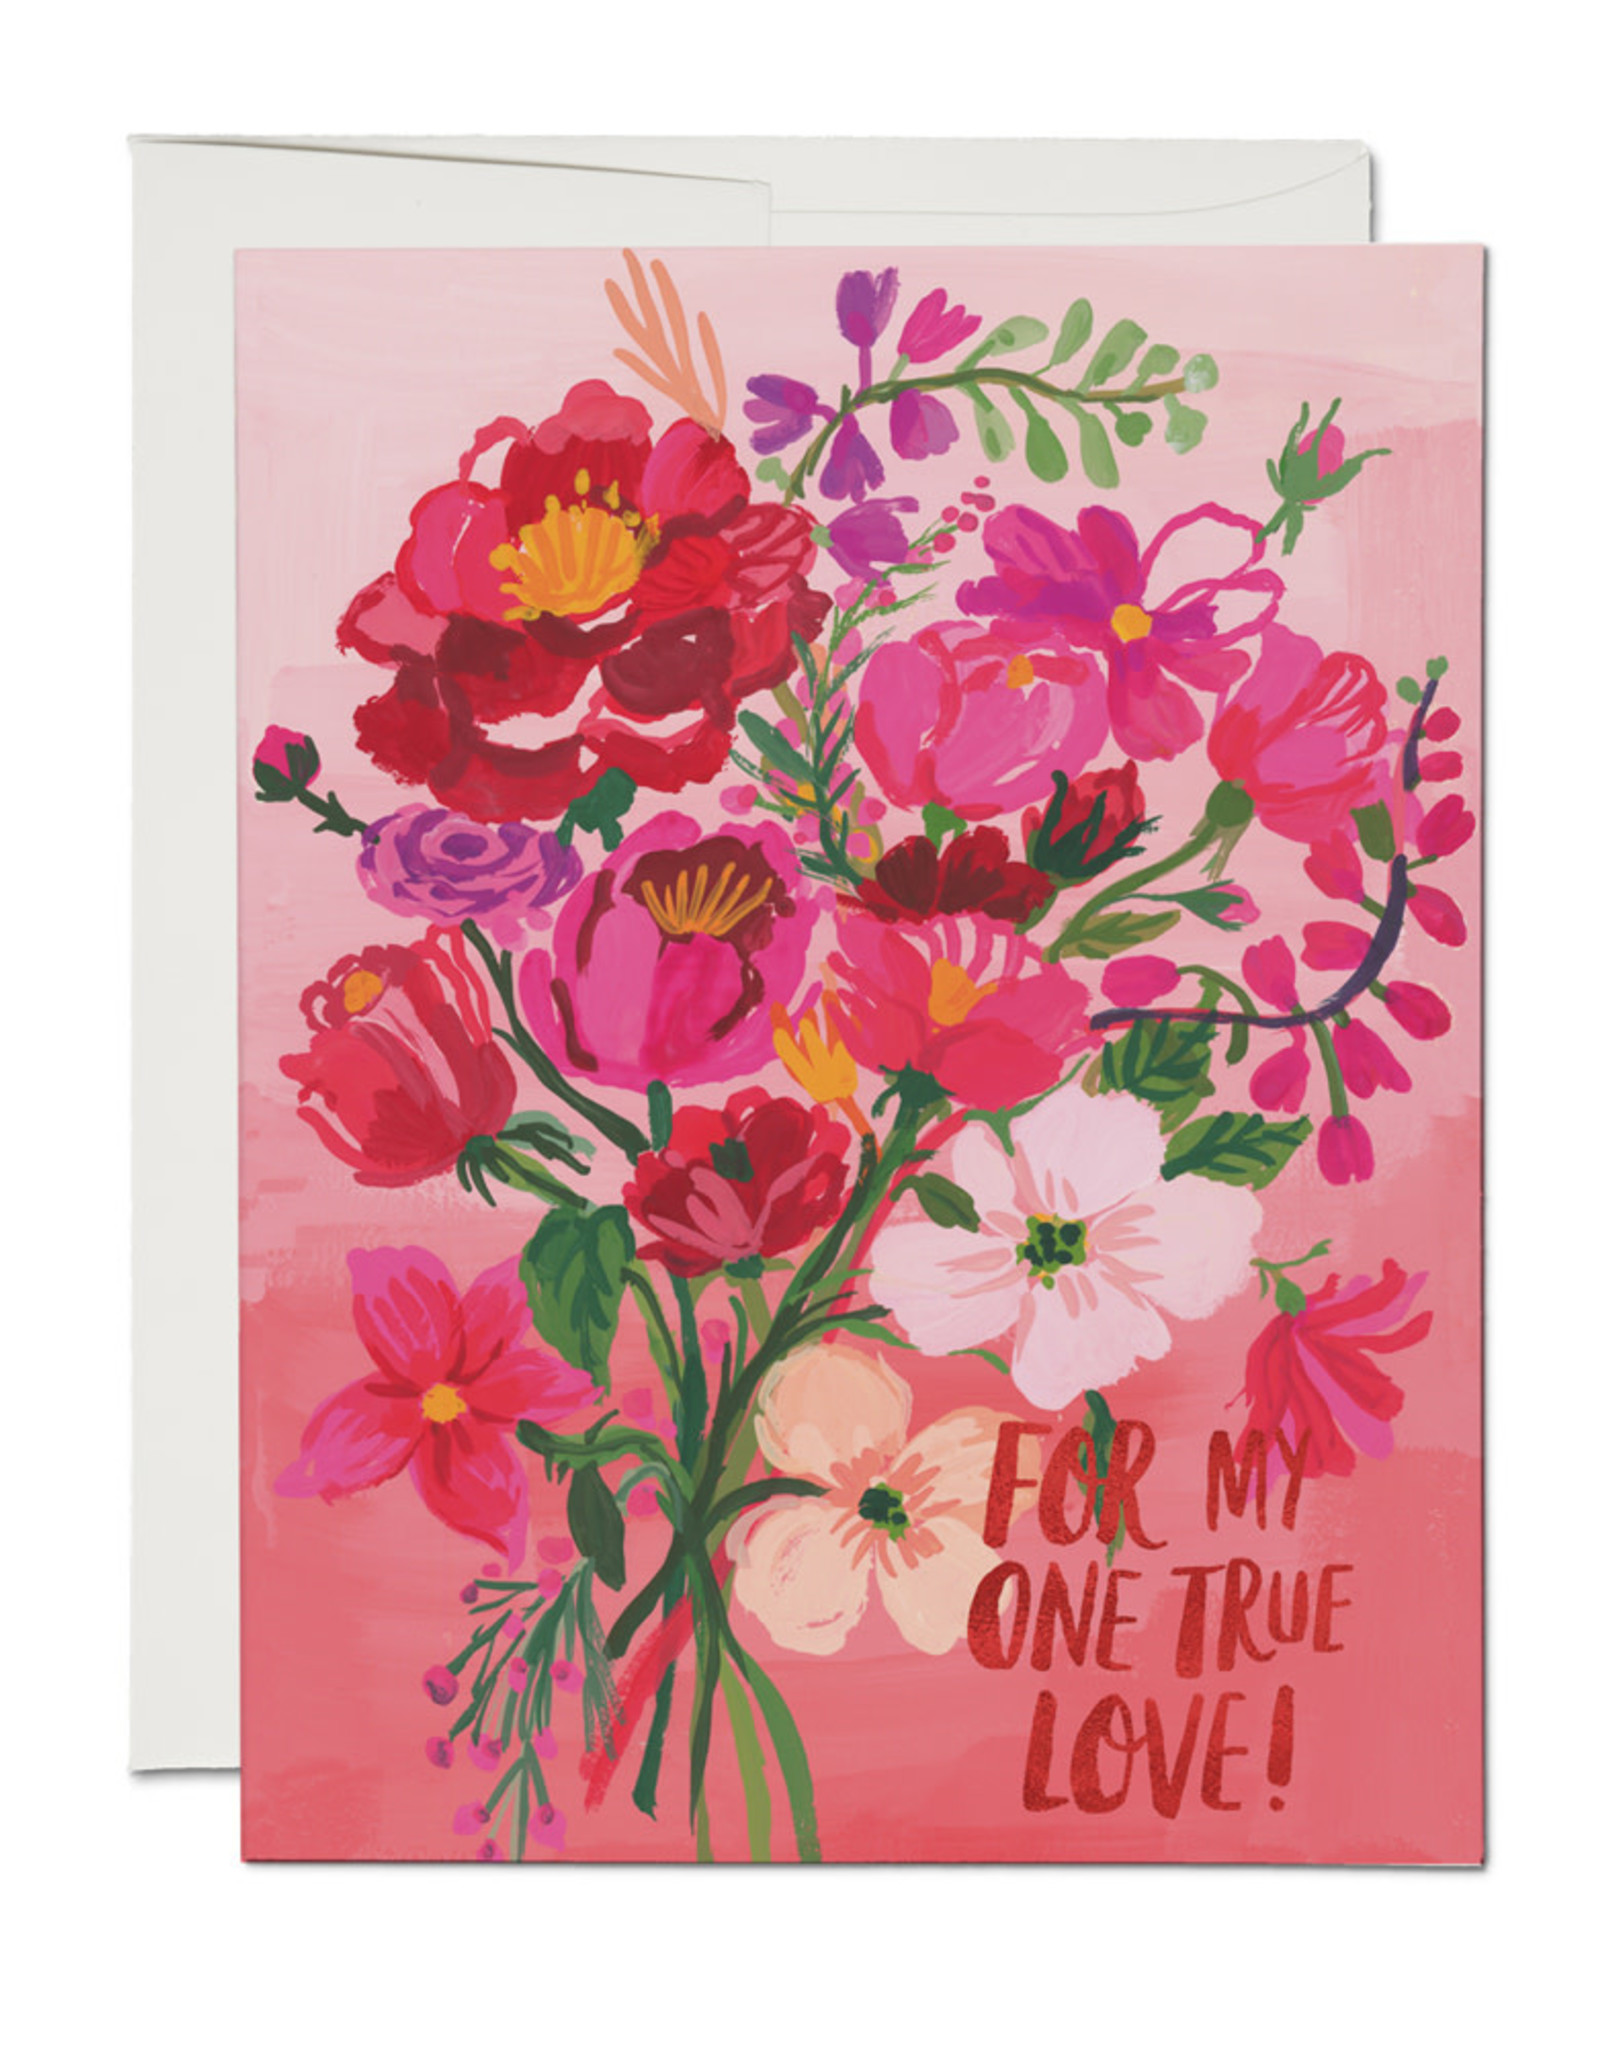 For My One True Love! Greeting Card